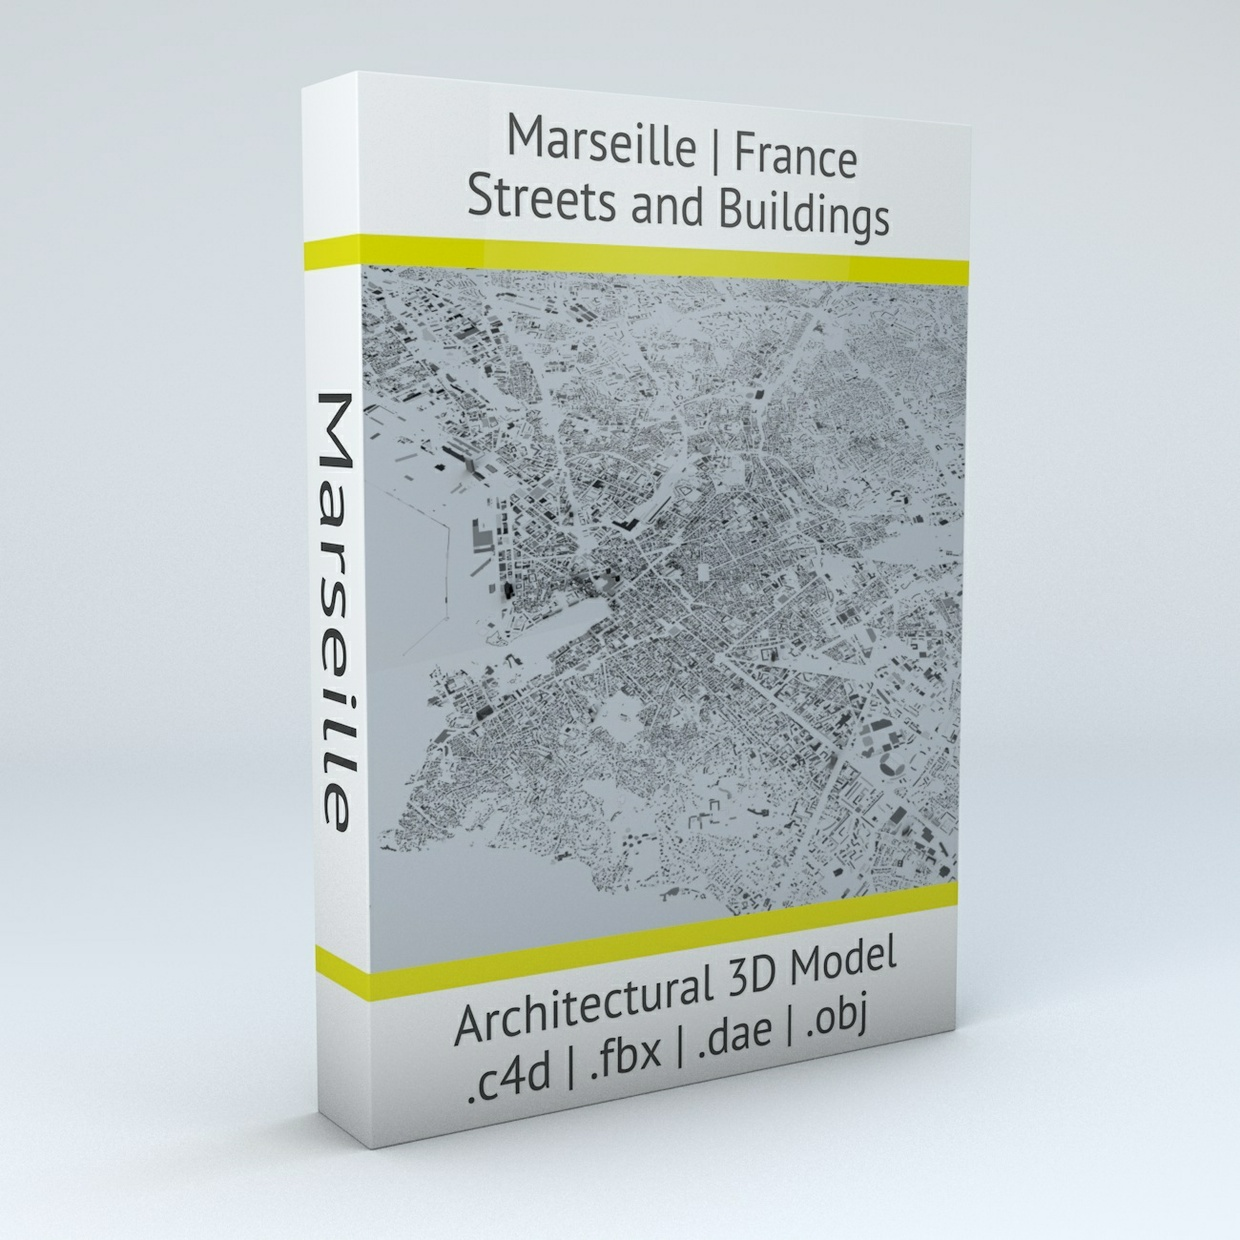 Marseille Streets and Buildings Architectural 3D Model